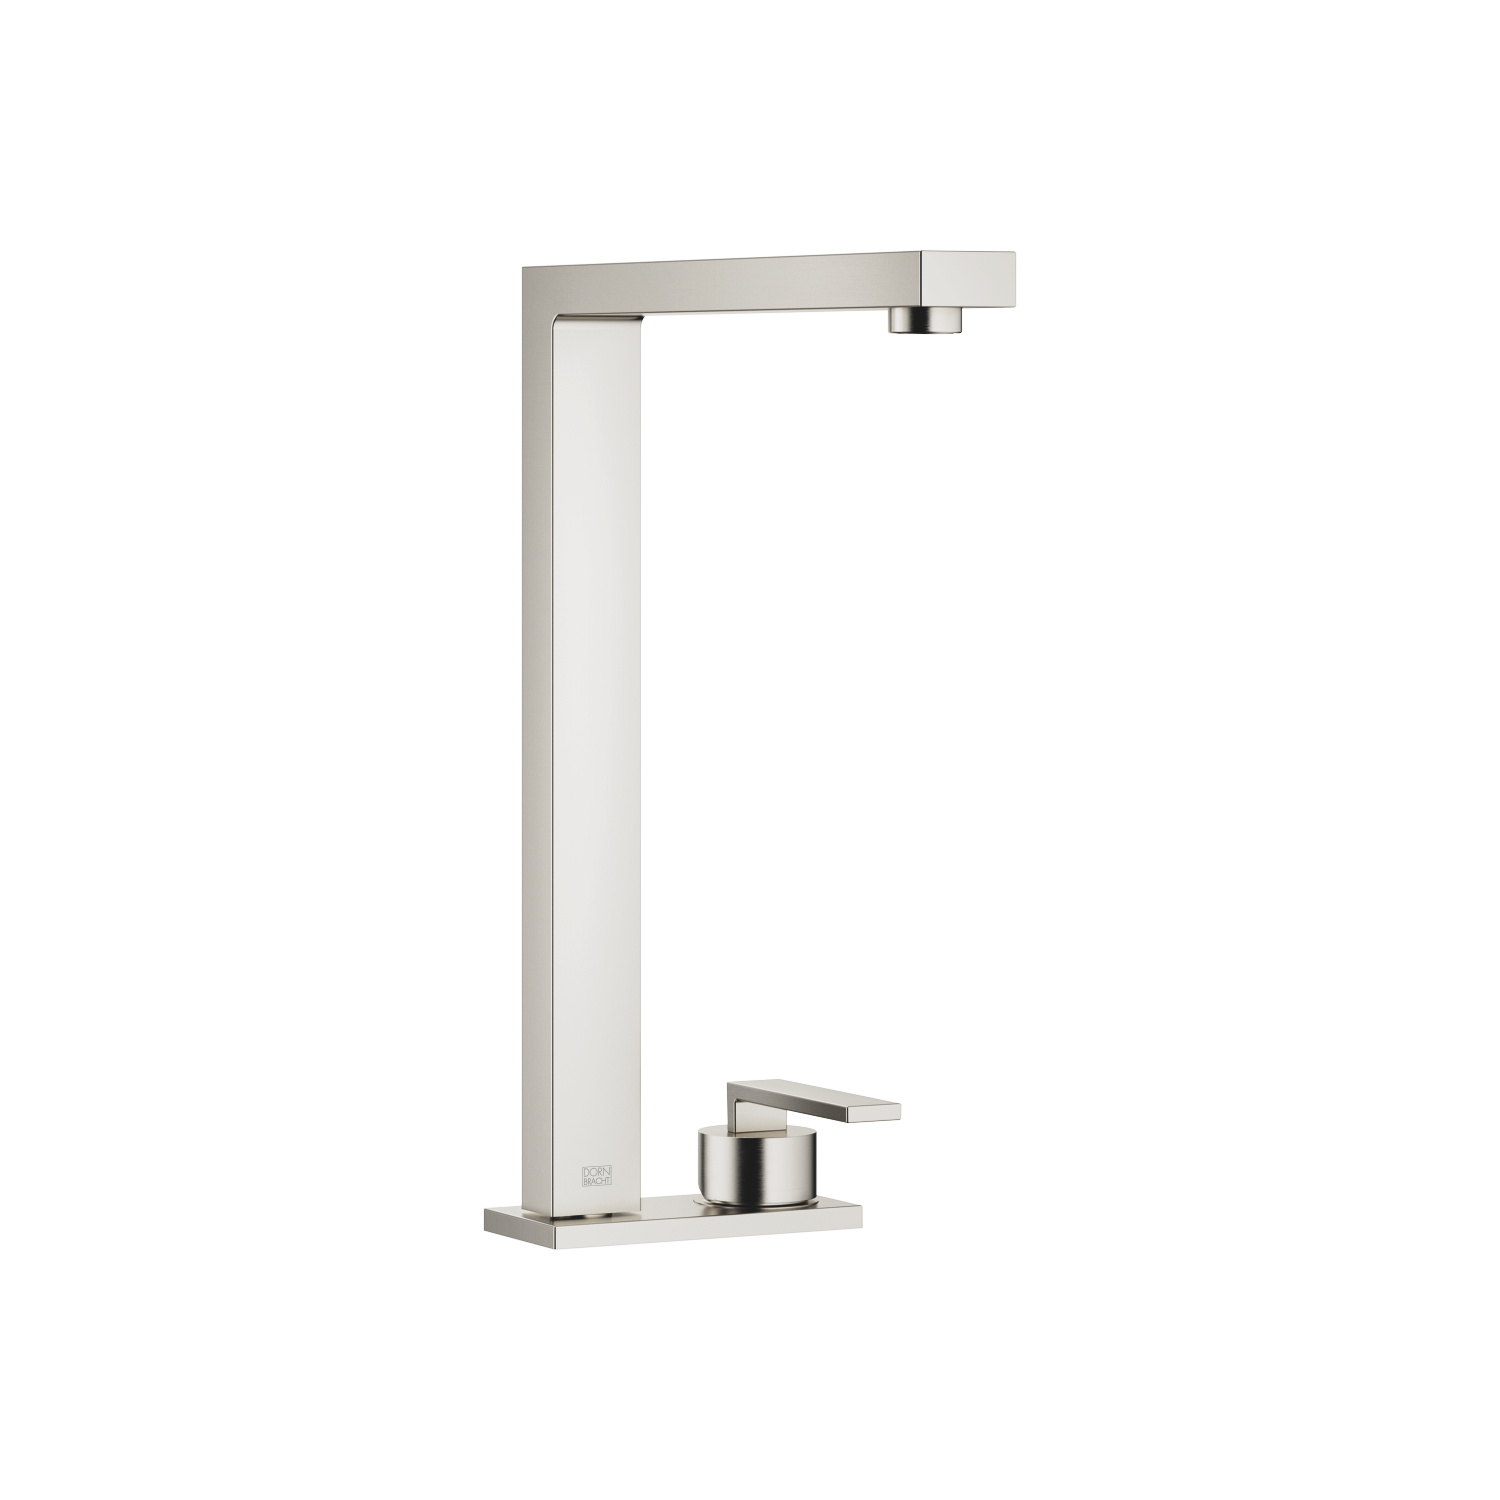 Two-hole mixer with cover plate - platinum matt